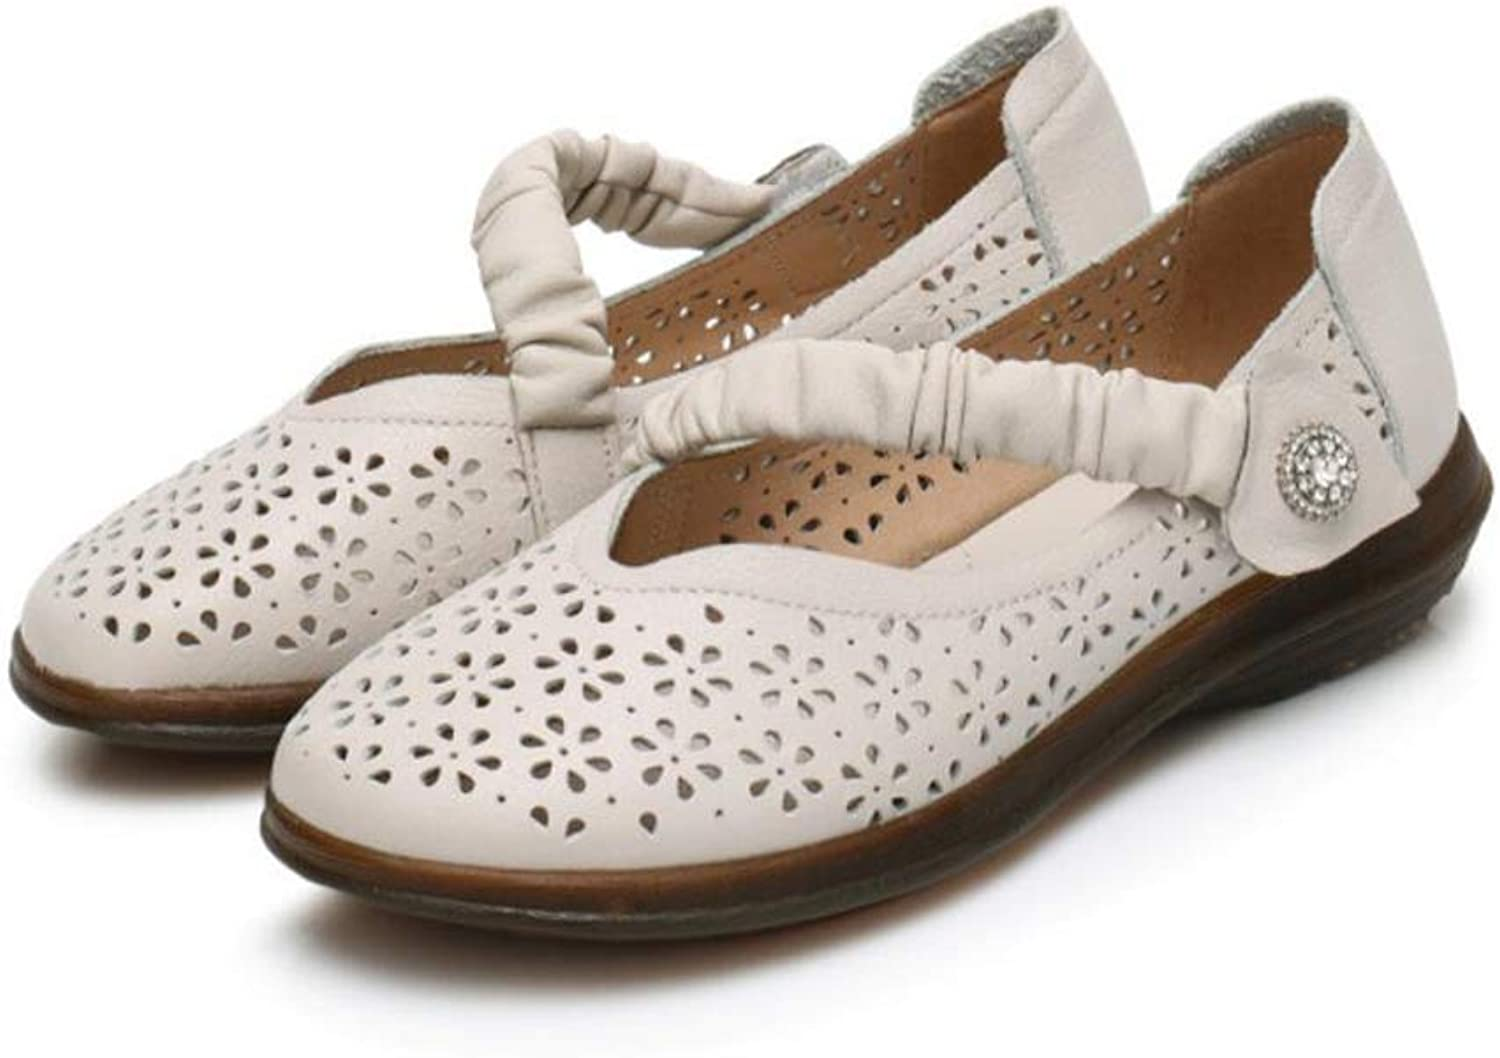 F1rst Rate Mary Jane Flats Women- Comfort Round Toe Ballet Casual Breathable Strap shoes